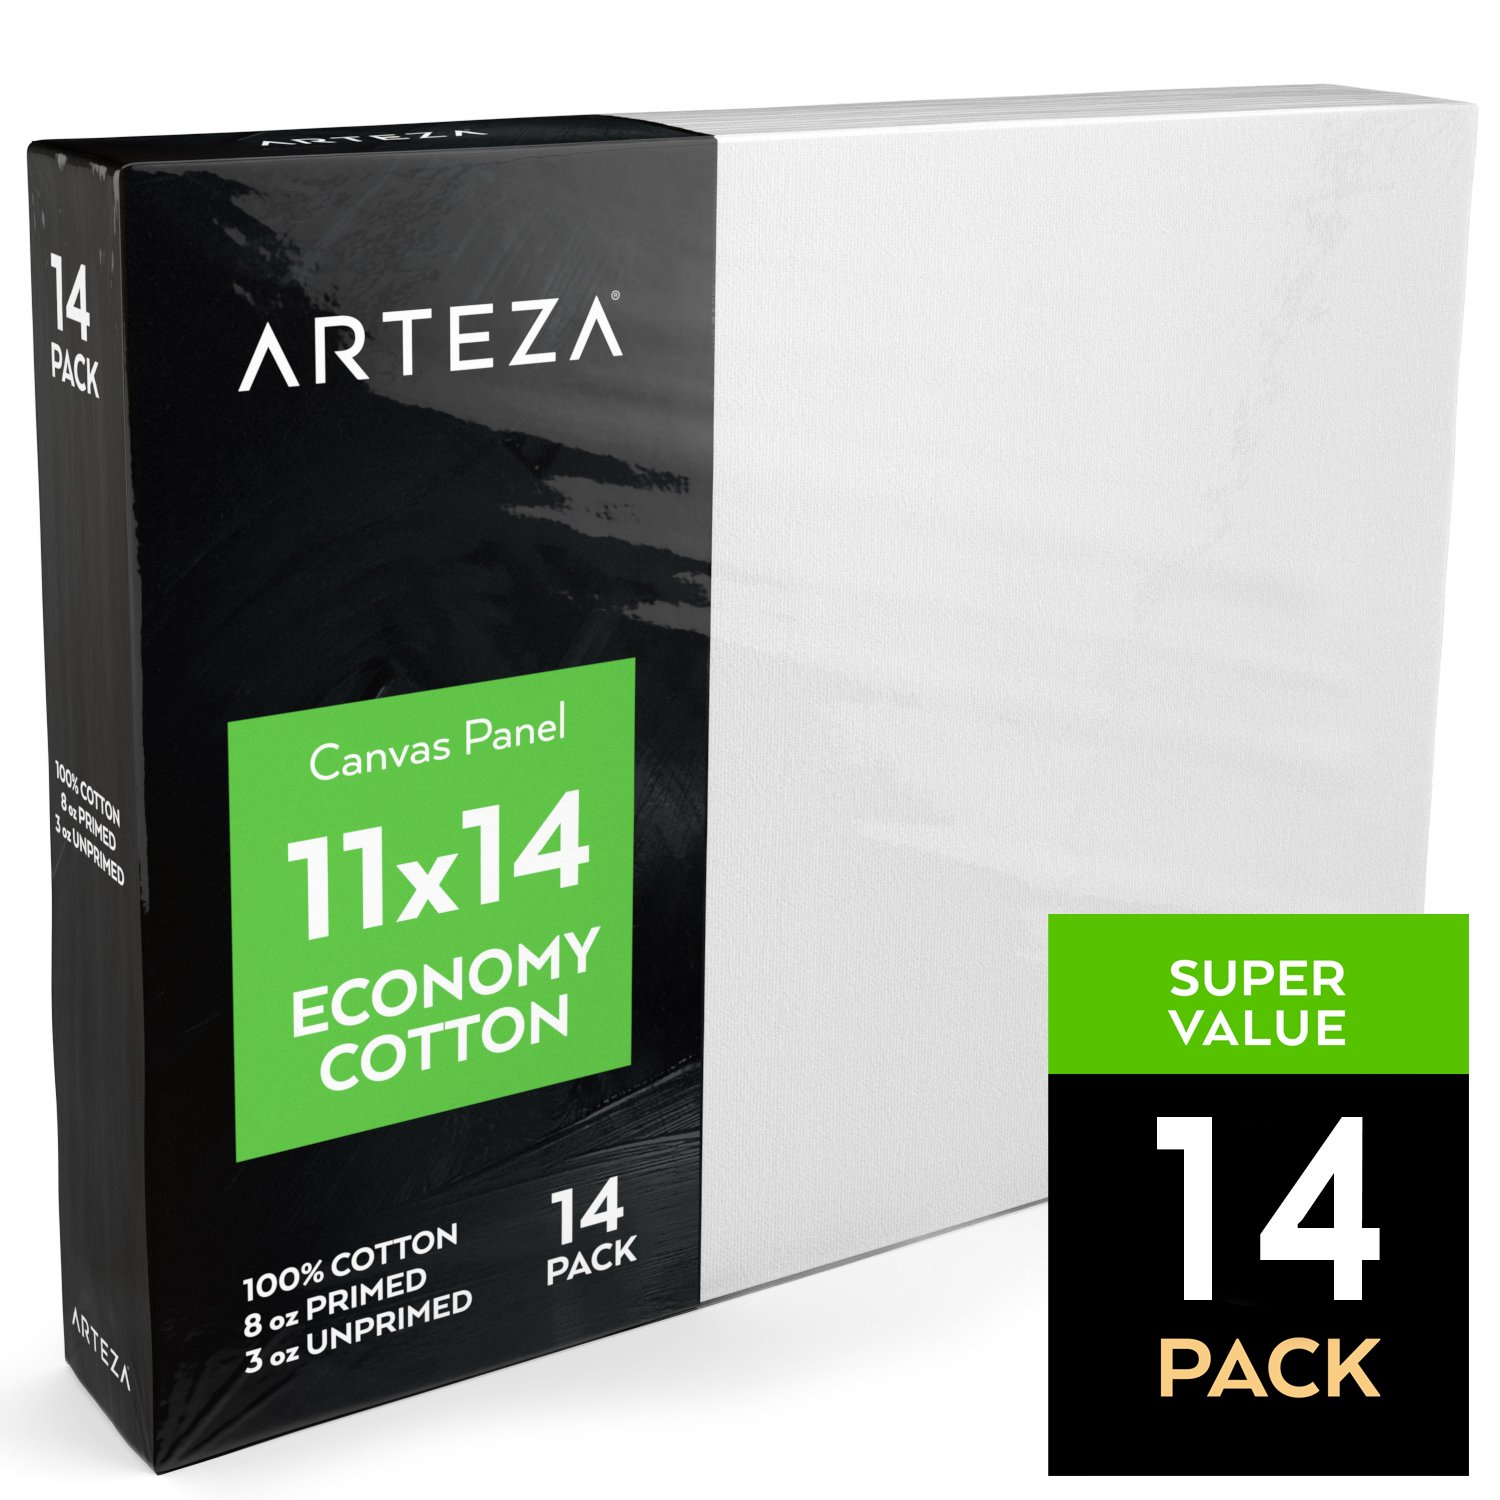 Arteza 11x14'' White Blank Canvas Panel Boards, Bulk Pack of 14, Primed, 100% Cotton for Acrylic Painting, Oil Paint & Wet Art Media, Canvases for Professional Artist, Hobby Painters & Beginners by ARTEZA (Image #3)